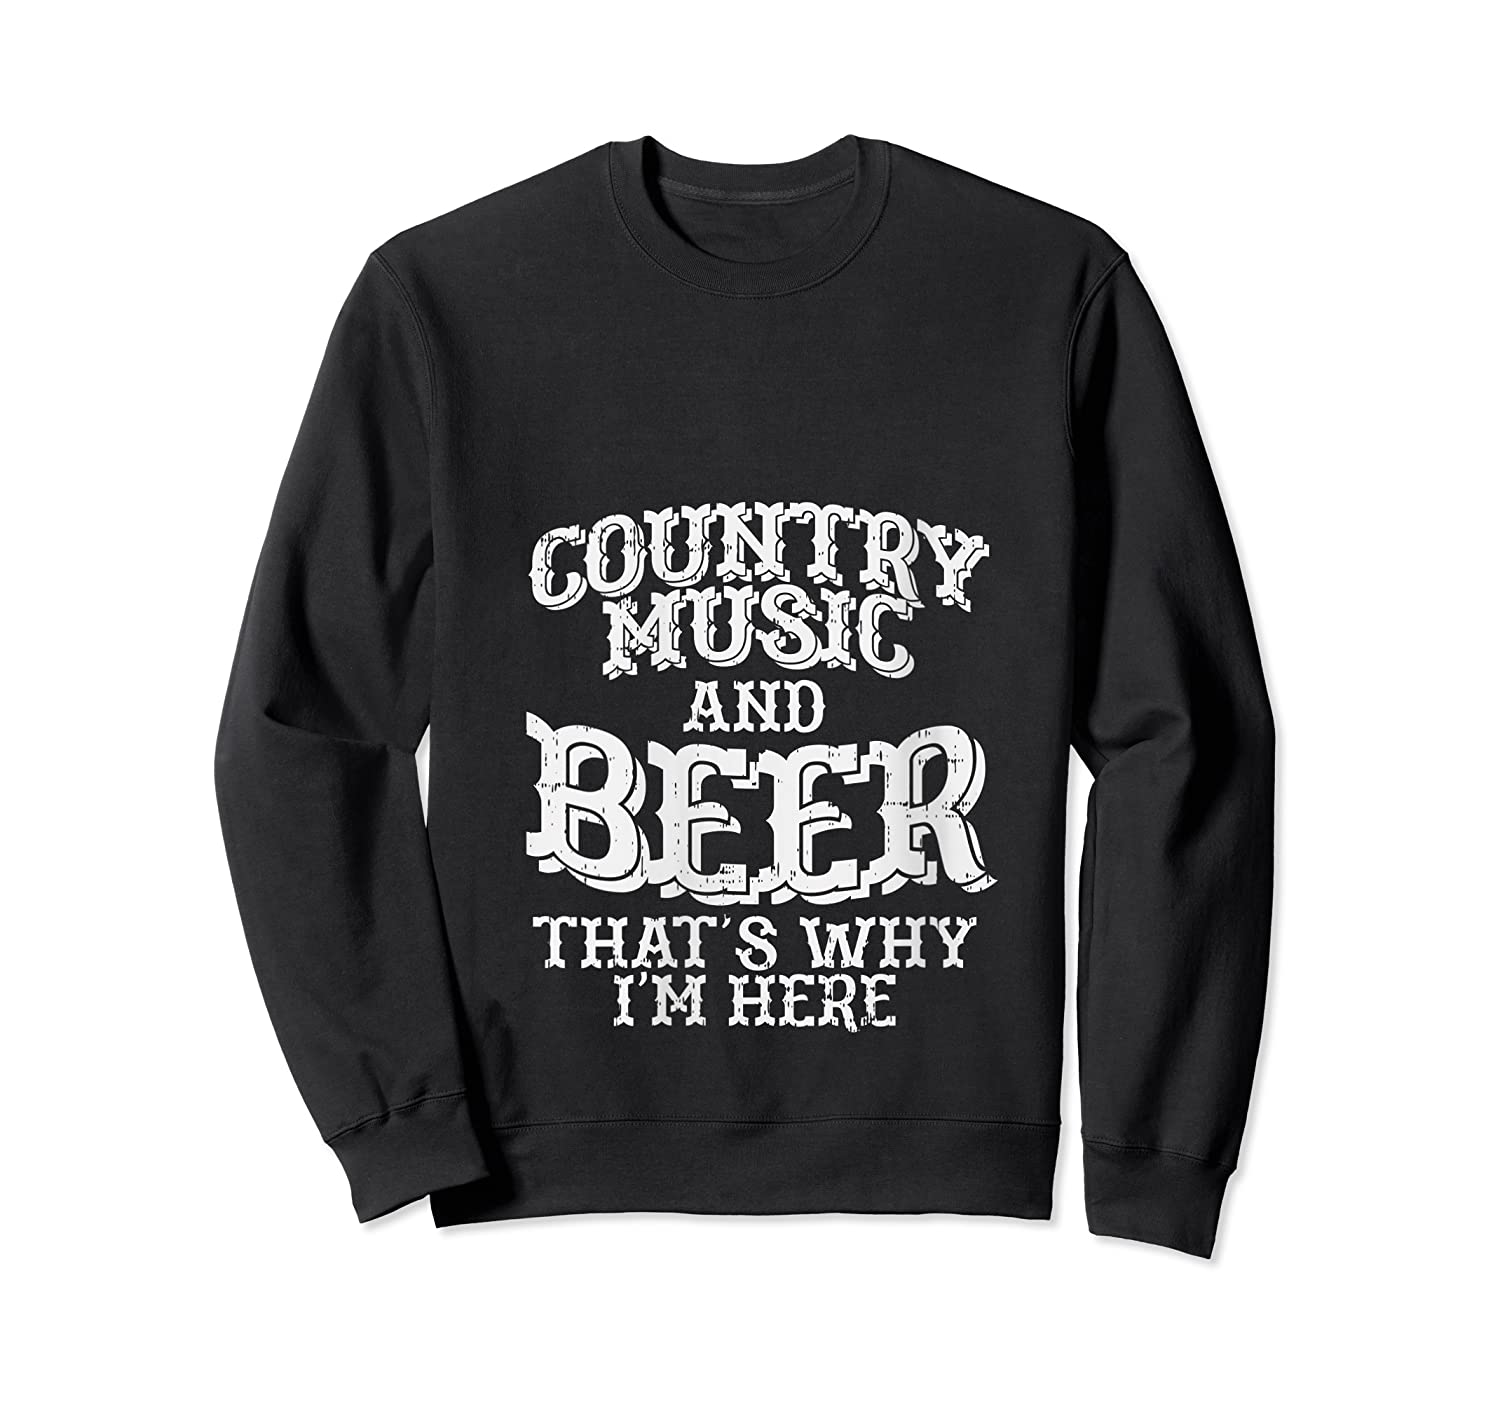 Country Music And Beer Thats Why Im Here Funny Vacation Gift T-shirt Crewneck Sweater